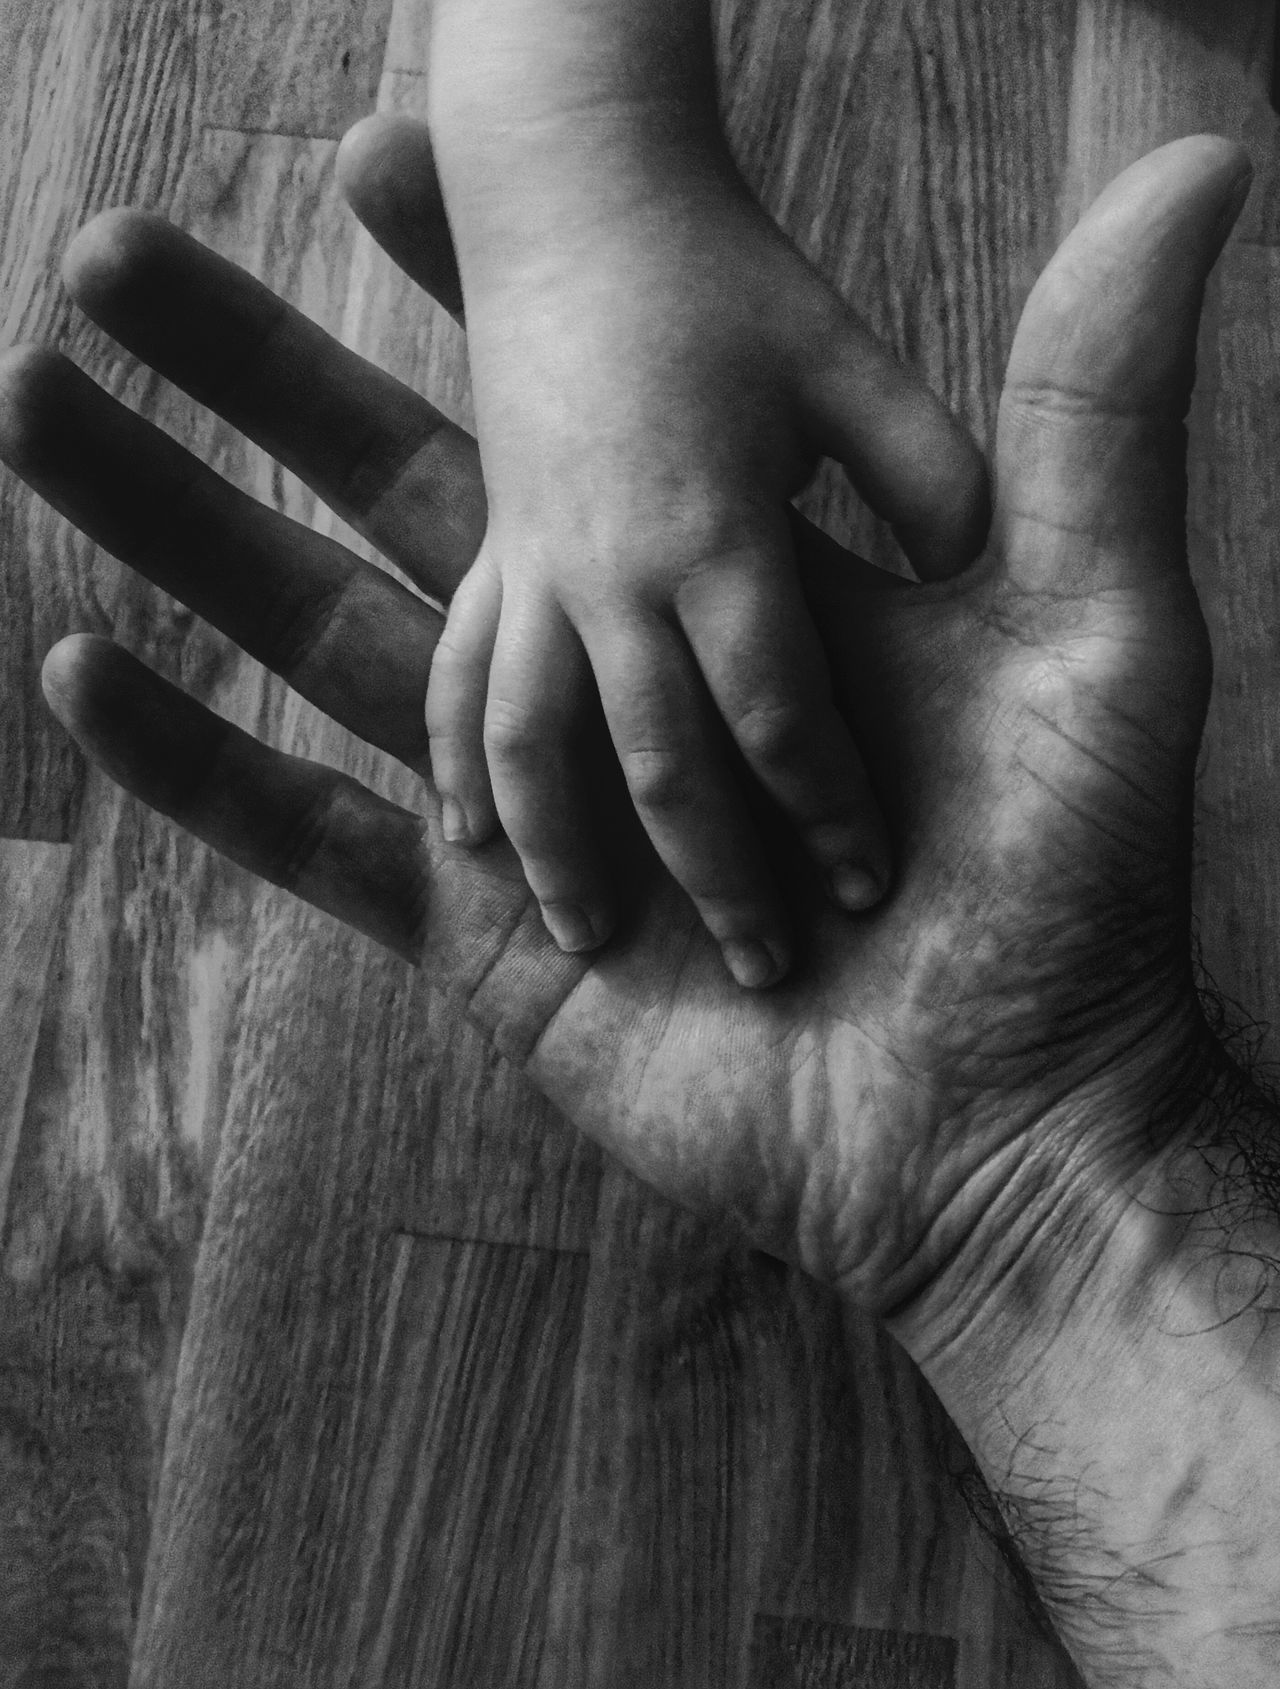 EyEmNewHere Human Hand Childhood One Person Indoors  Men Close-up Human Body Part Day People Hand Fatherhood Moments Father & Son EyeEm Gallery EyeEmNewHere Mobile Conversations Photo Photography Photographer Photoshoot ArtWork Arts Culture And Entertainment Awesome Photooftheday Fragility EyeEmNewHere